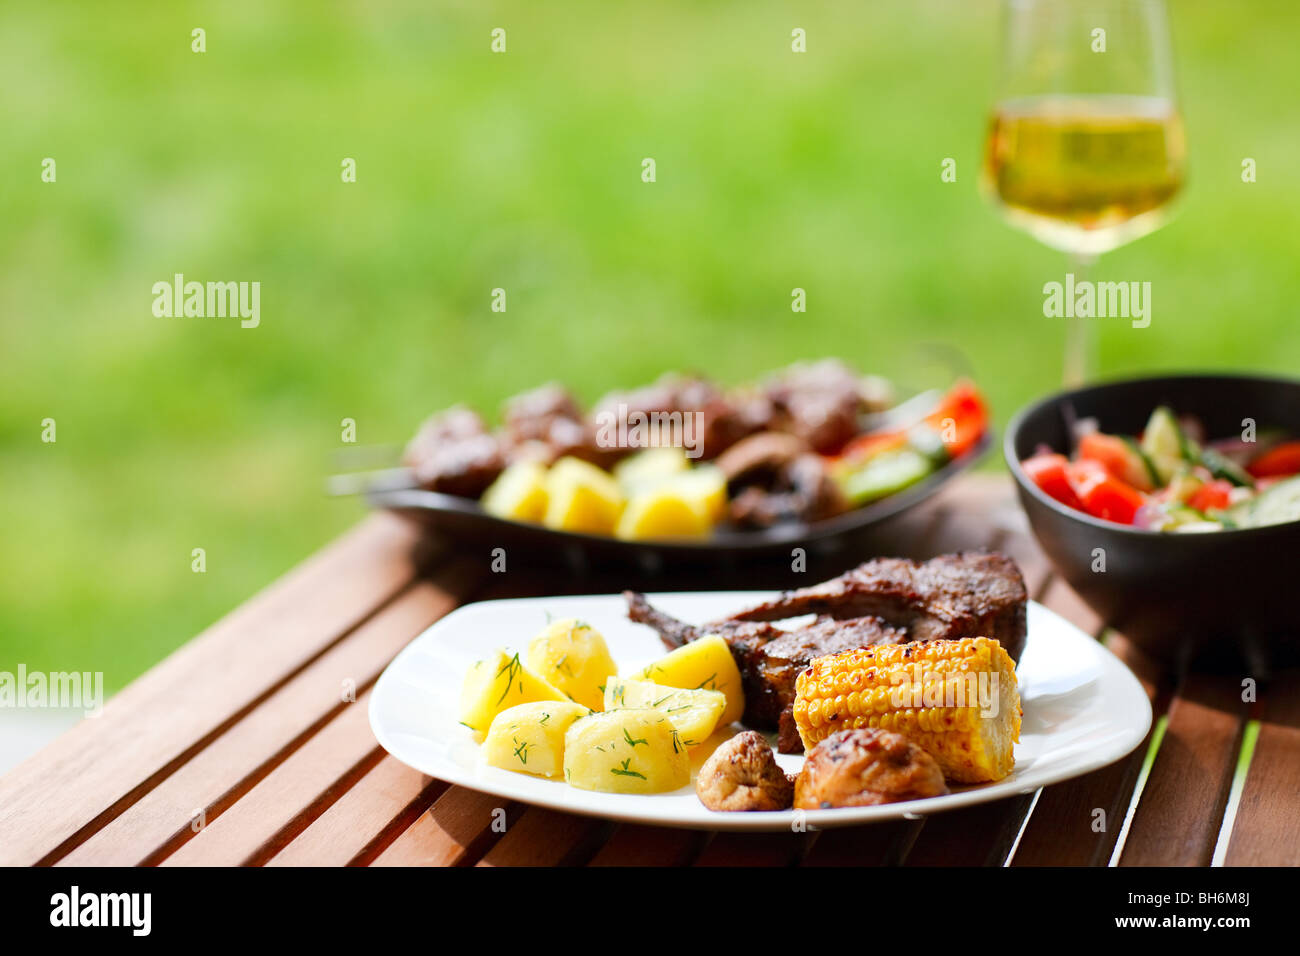 Grilling at summer weekend. Fresh grilled meat and vegetables served outdoors. - Stock Image